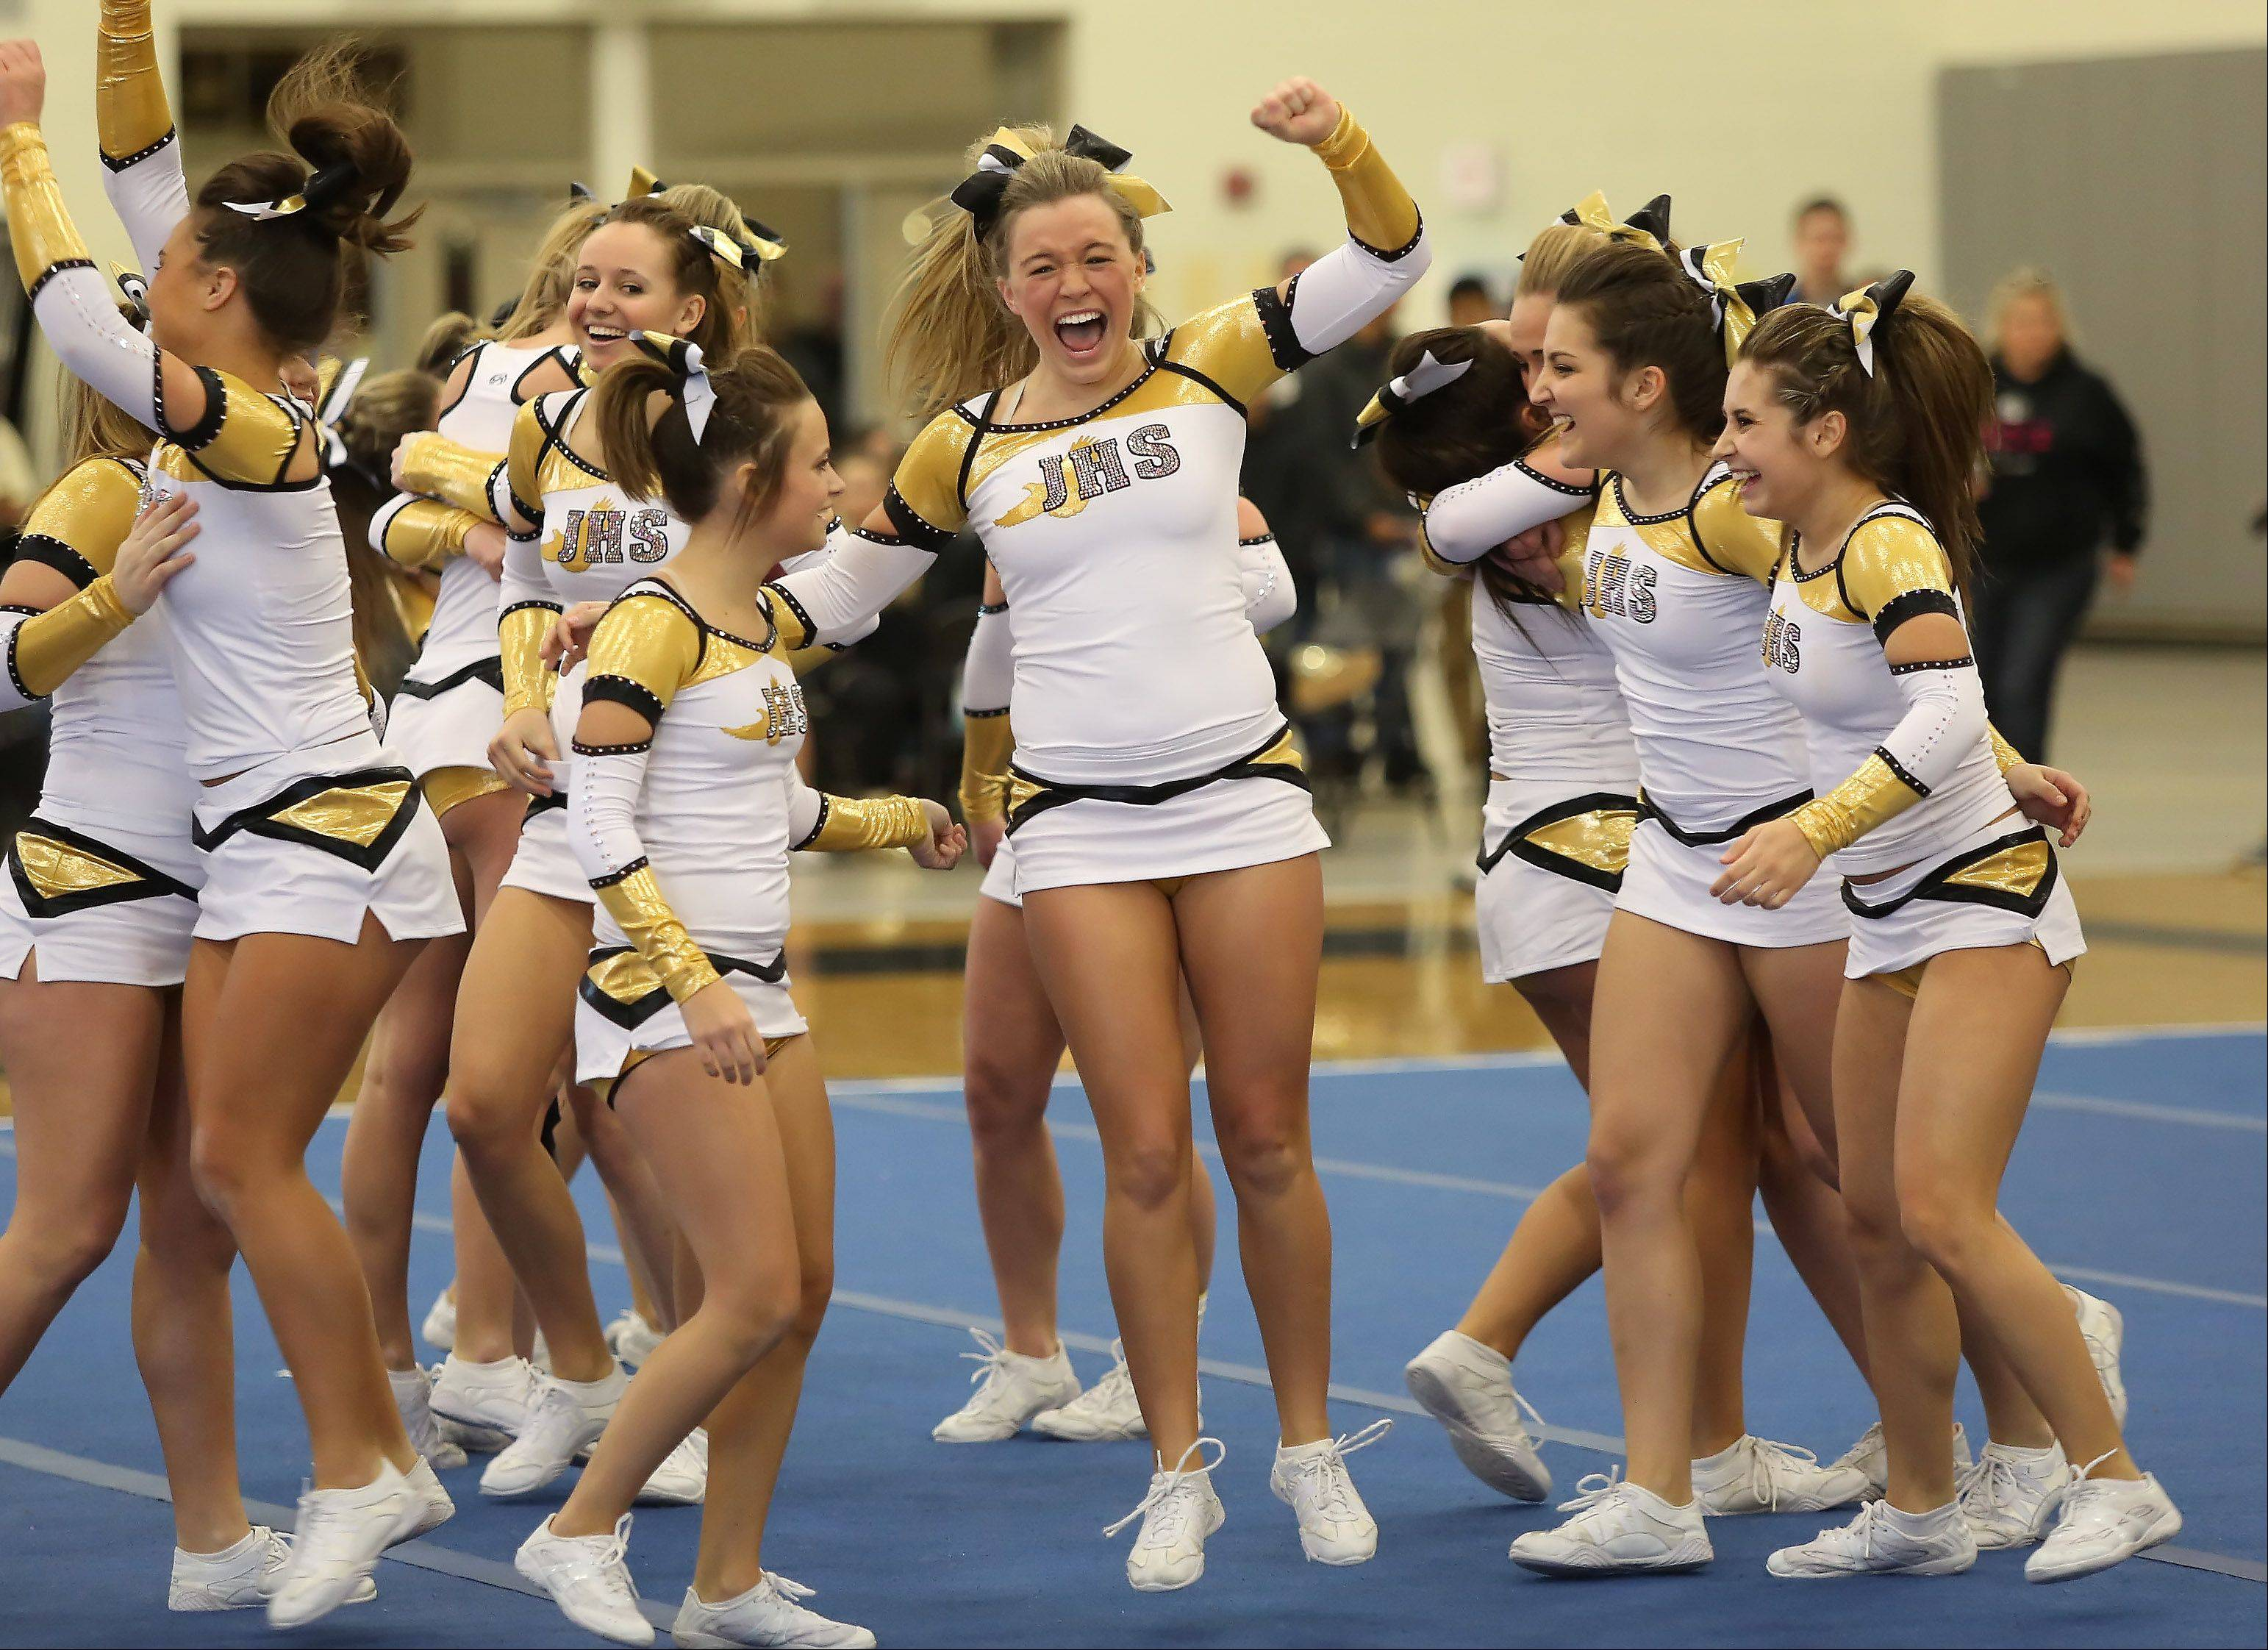 Jacobs High School cheerleader Ally Jefferson, center, jumps for joy with her teammates after they competed in the Large Team category Sunday during the IHSA Cheerleading Sectional at Grayslake North High School.